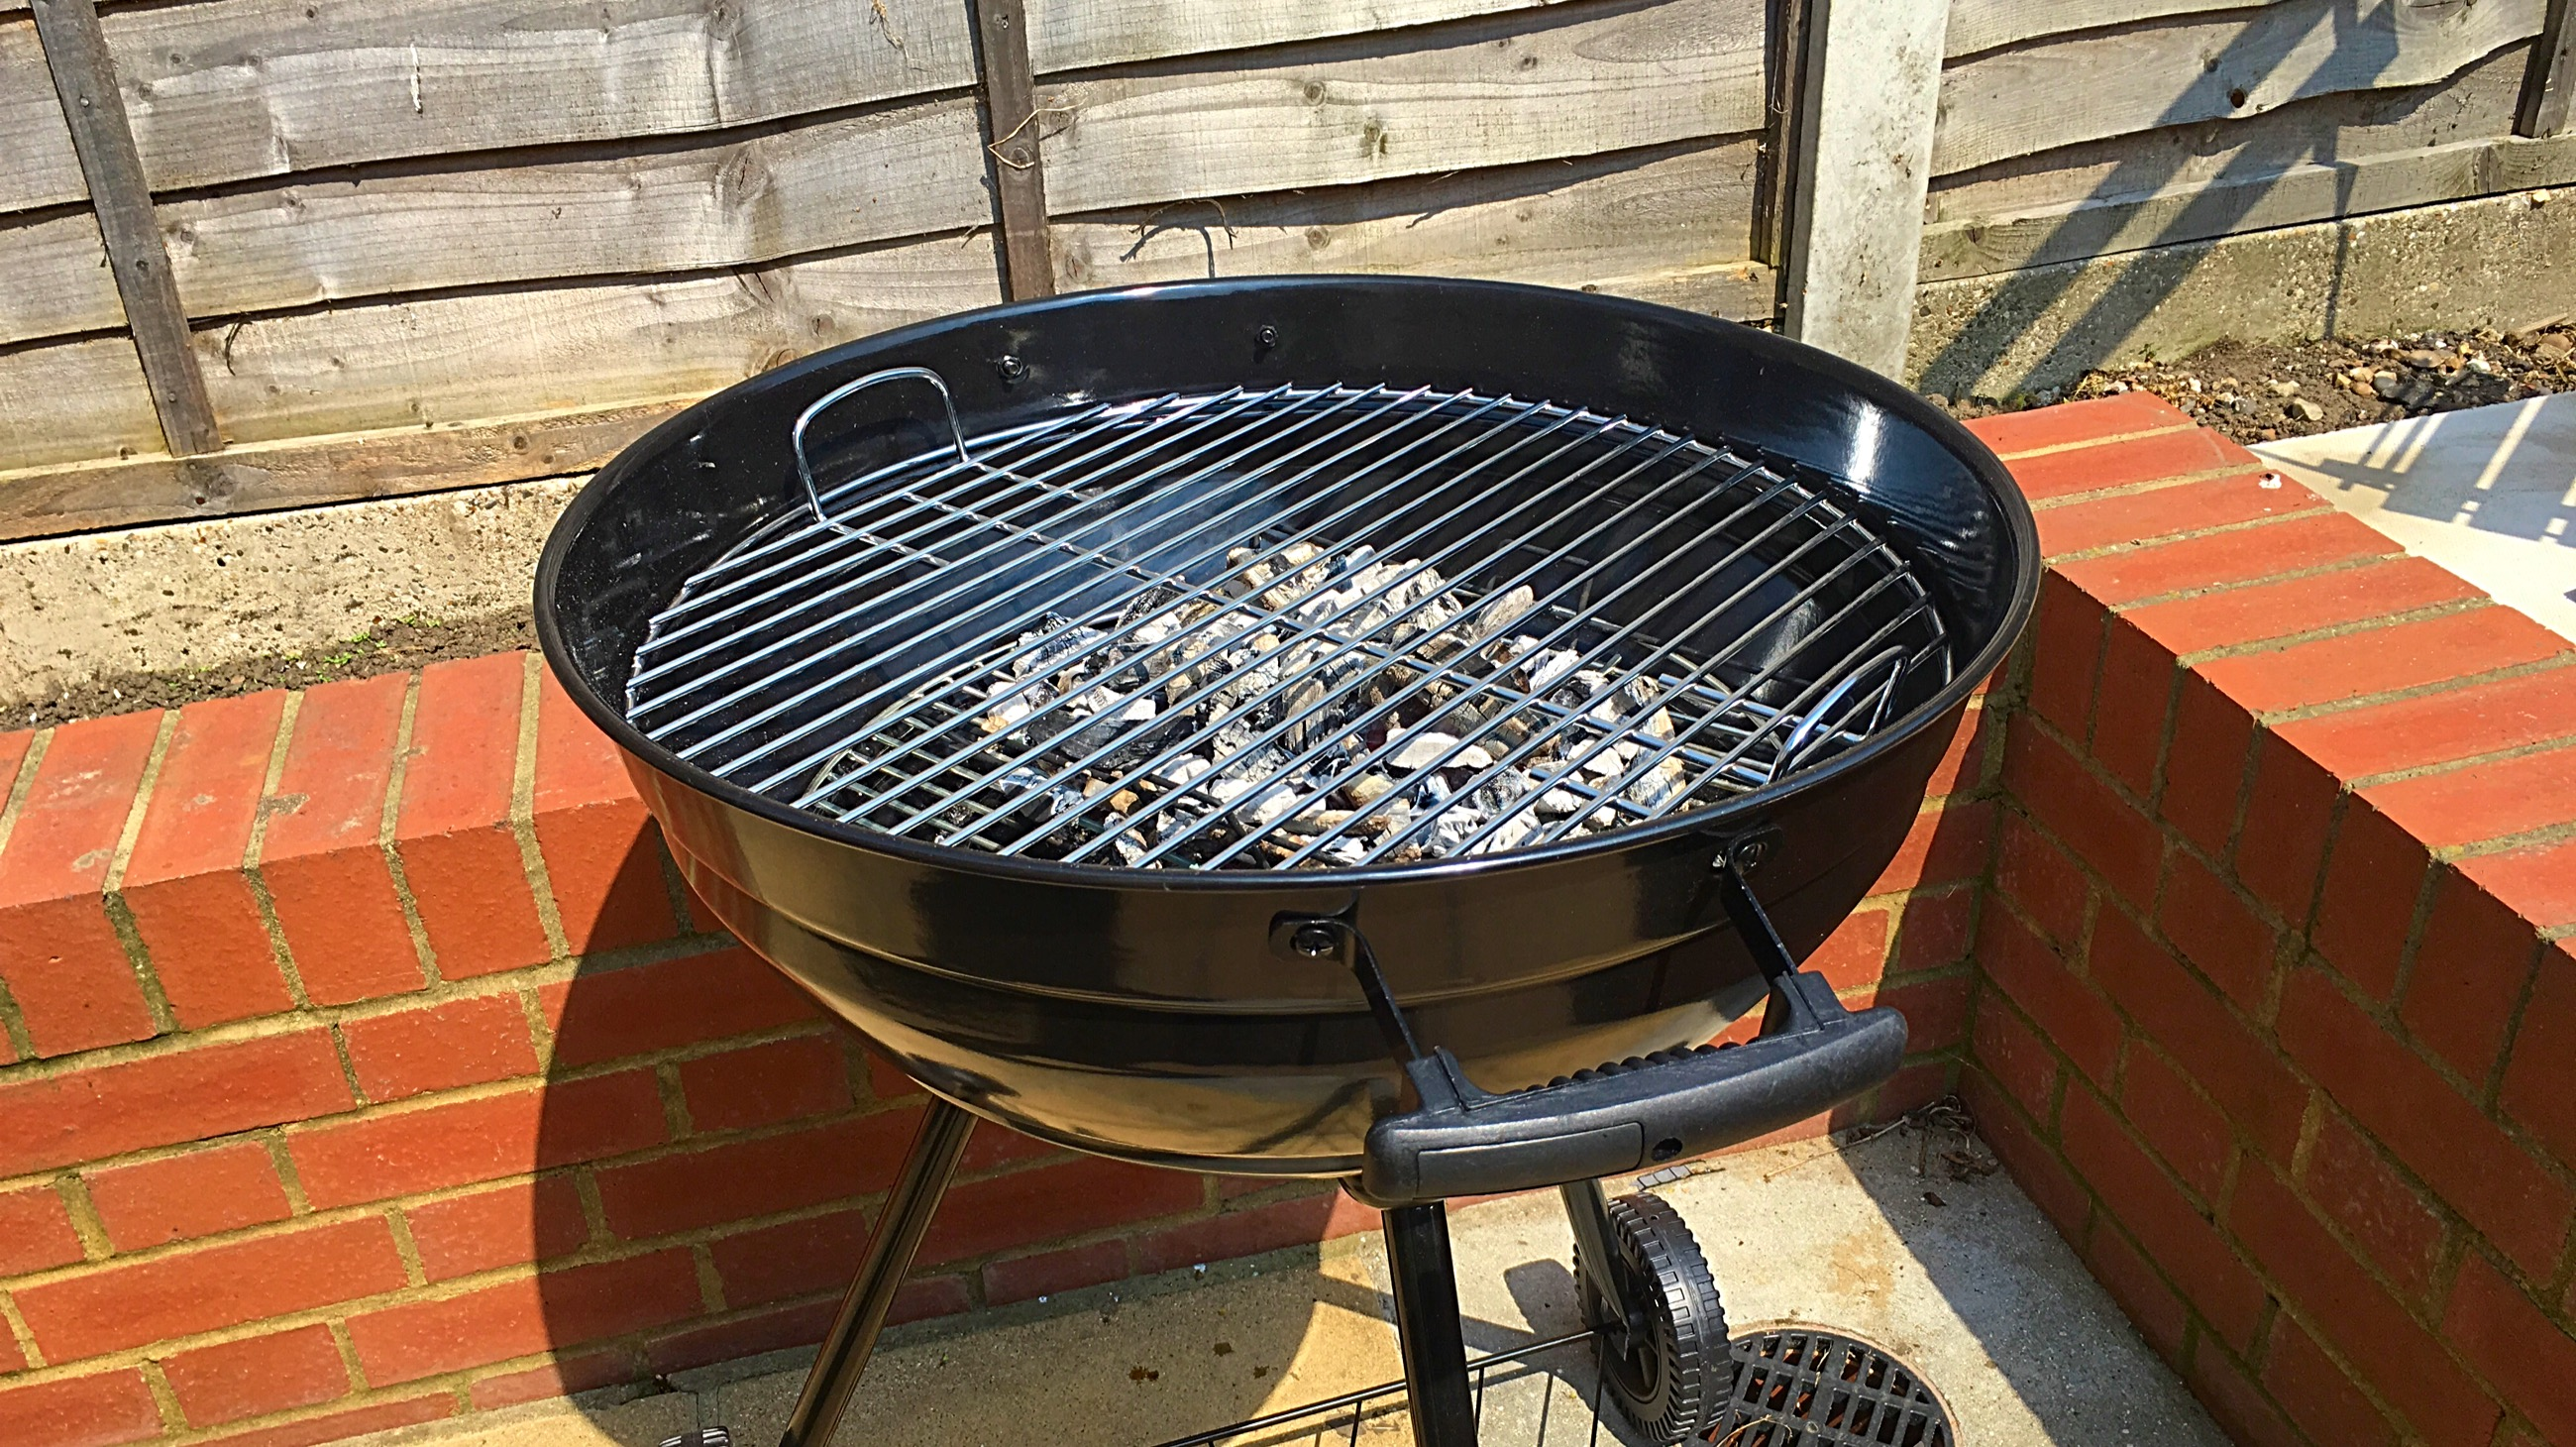 Landmann Holzkohlegrill Xxl 11510 : Landmann grill chef 31347 57cm premium review a great bbq for £100